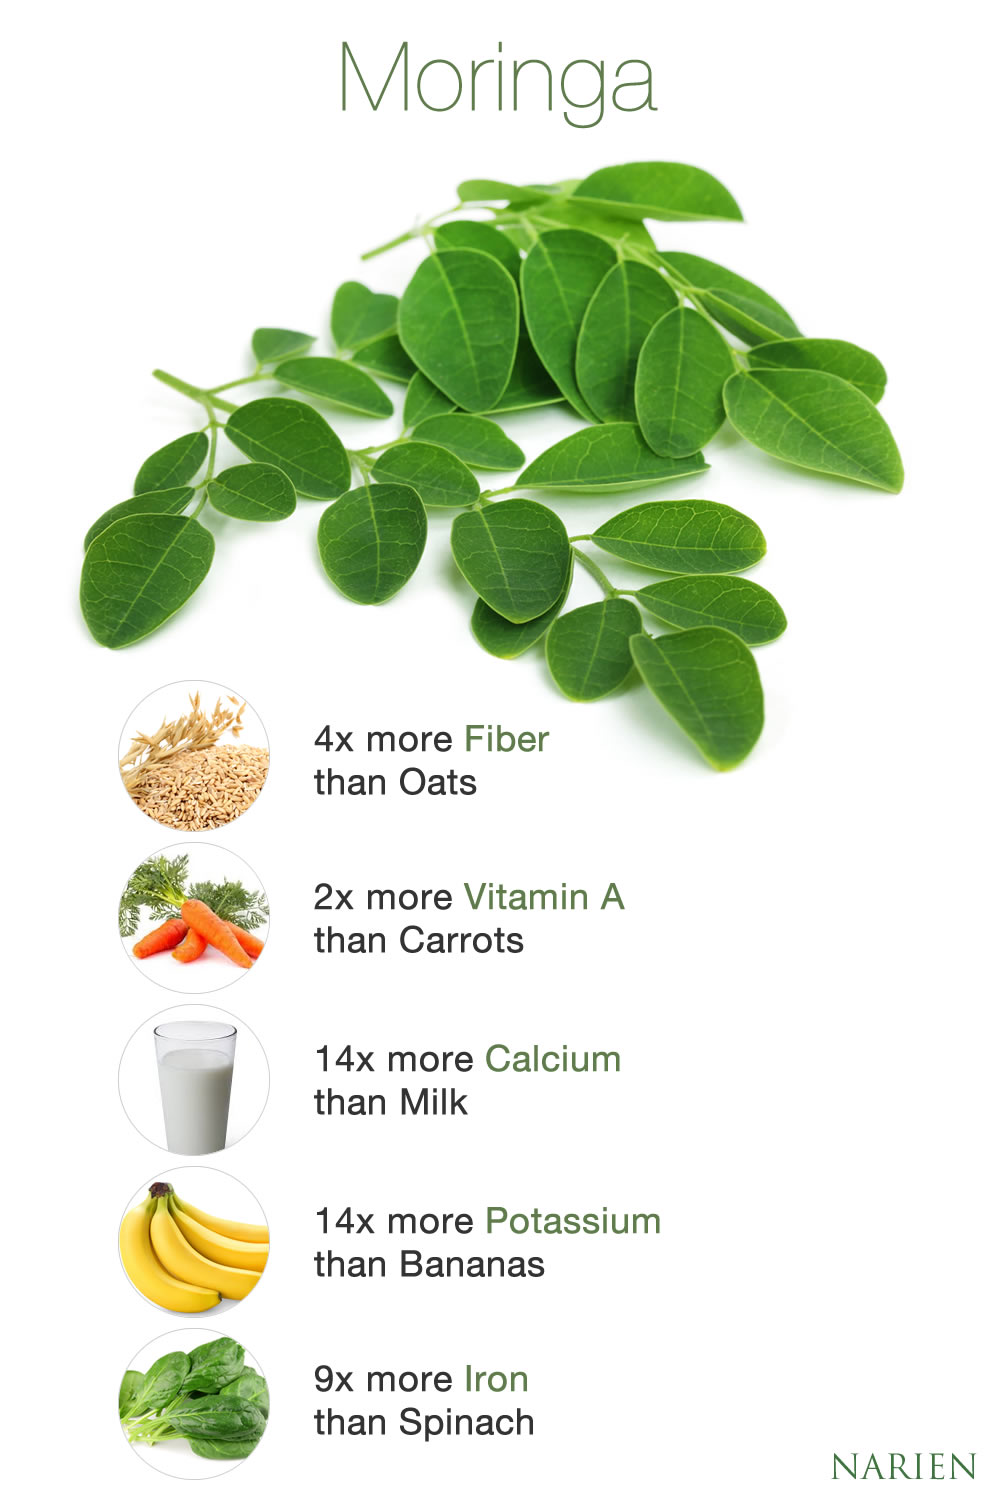 Where to get moringa